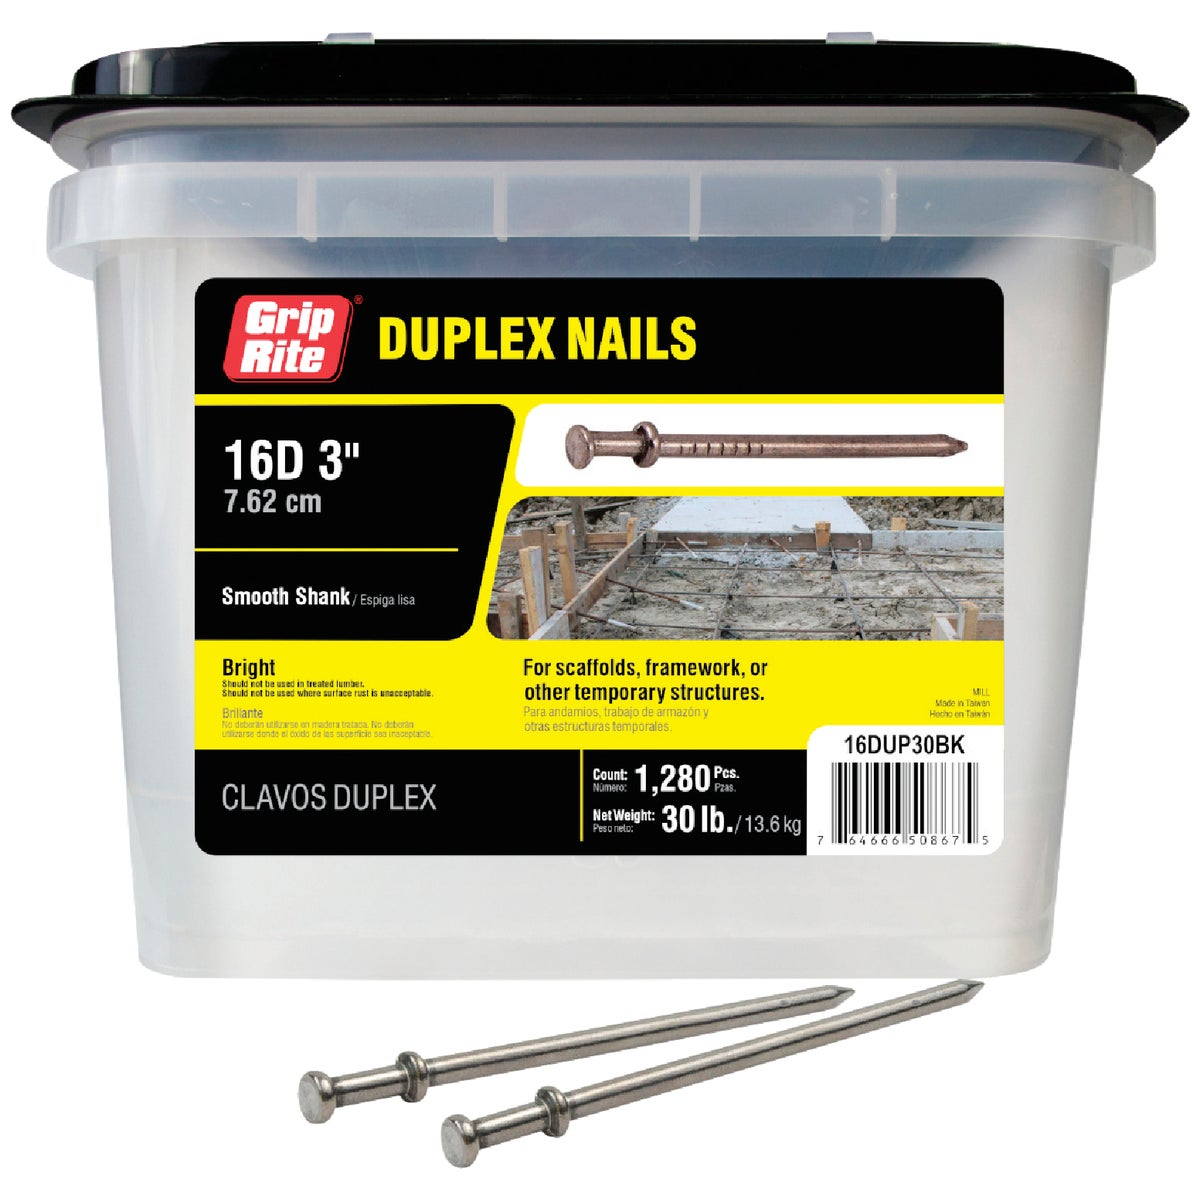 30LB 16D BRT DUPLEX NAIL - 708012 by Primesource - Container A